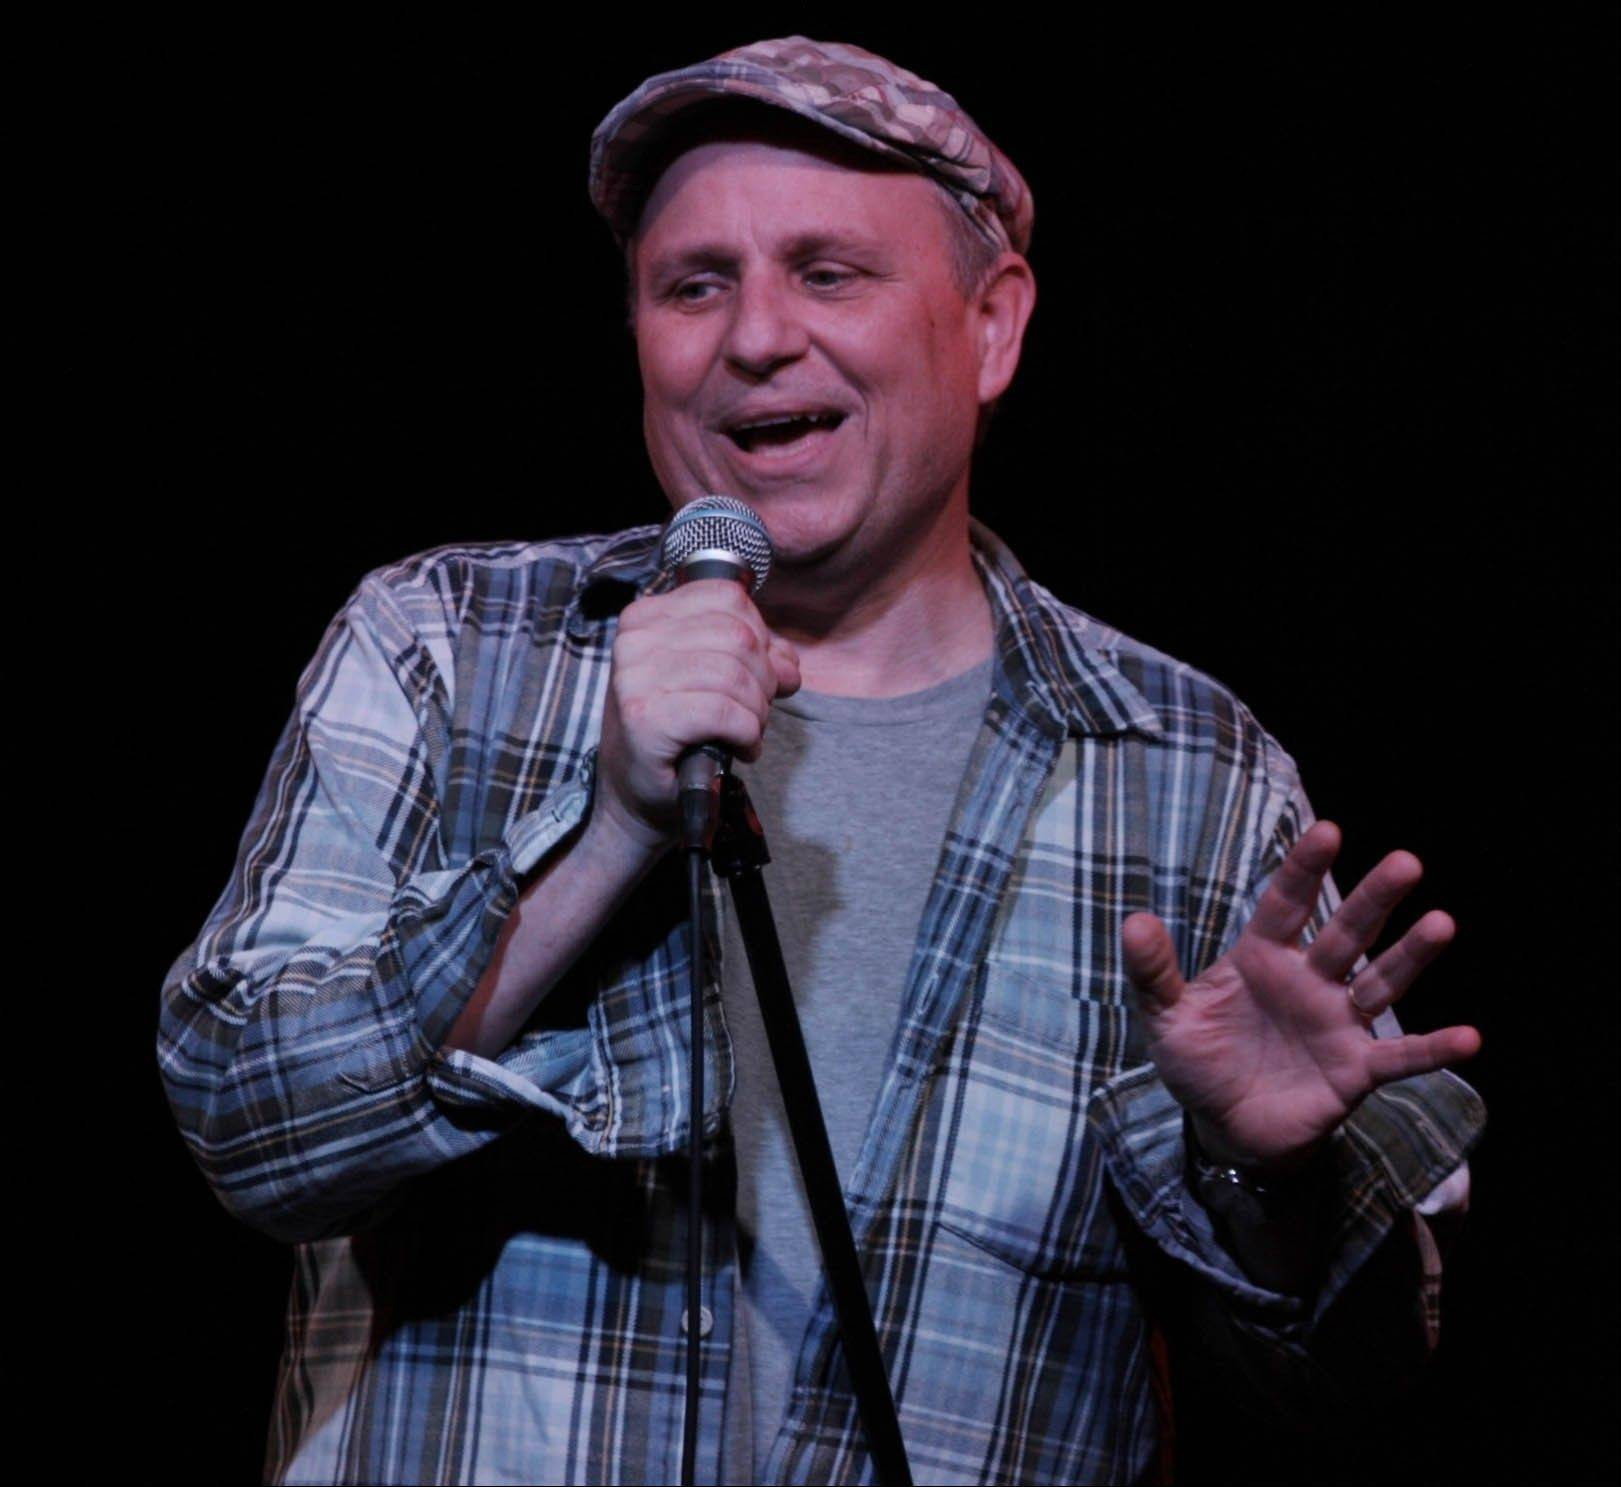 Comedian, actor and film director Bobcat Goldthwait appears at the UP Comedy Club in Chicago.